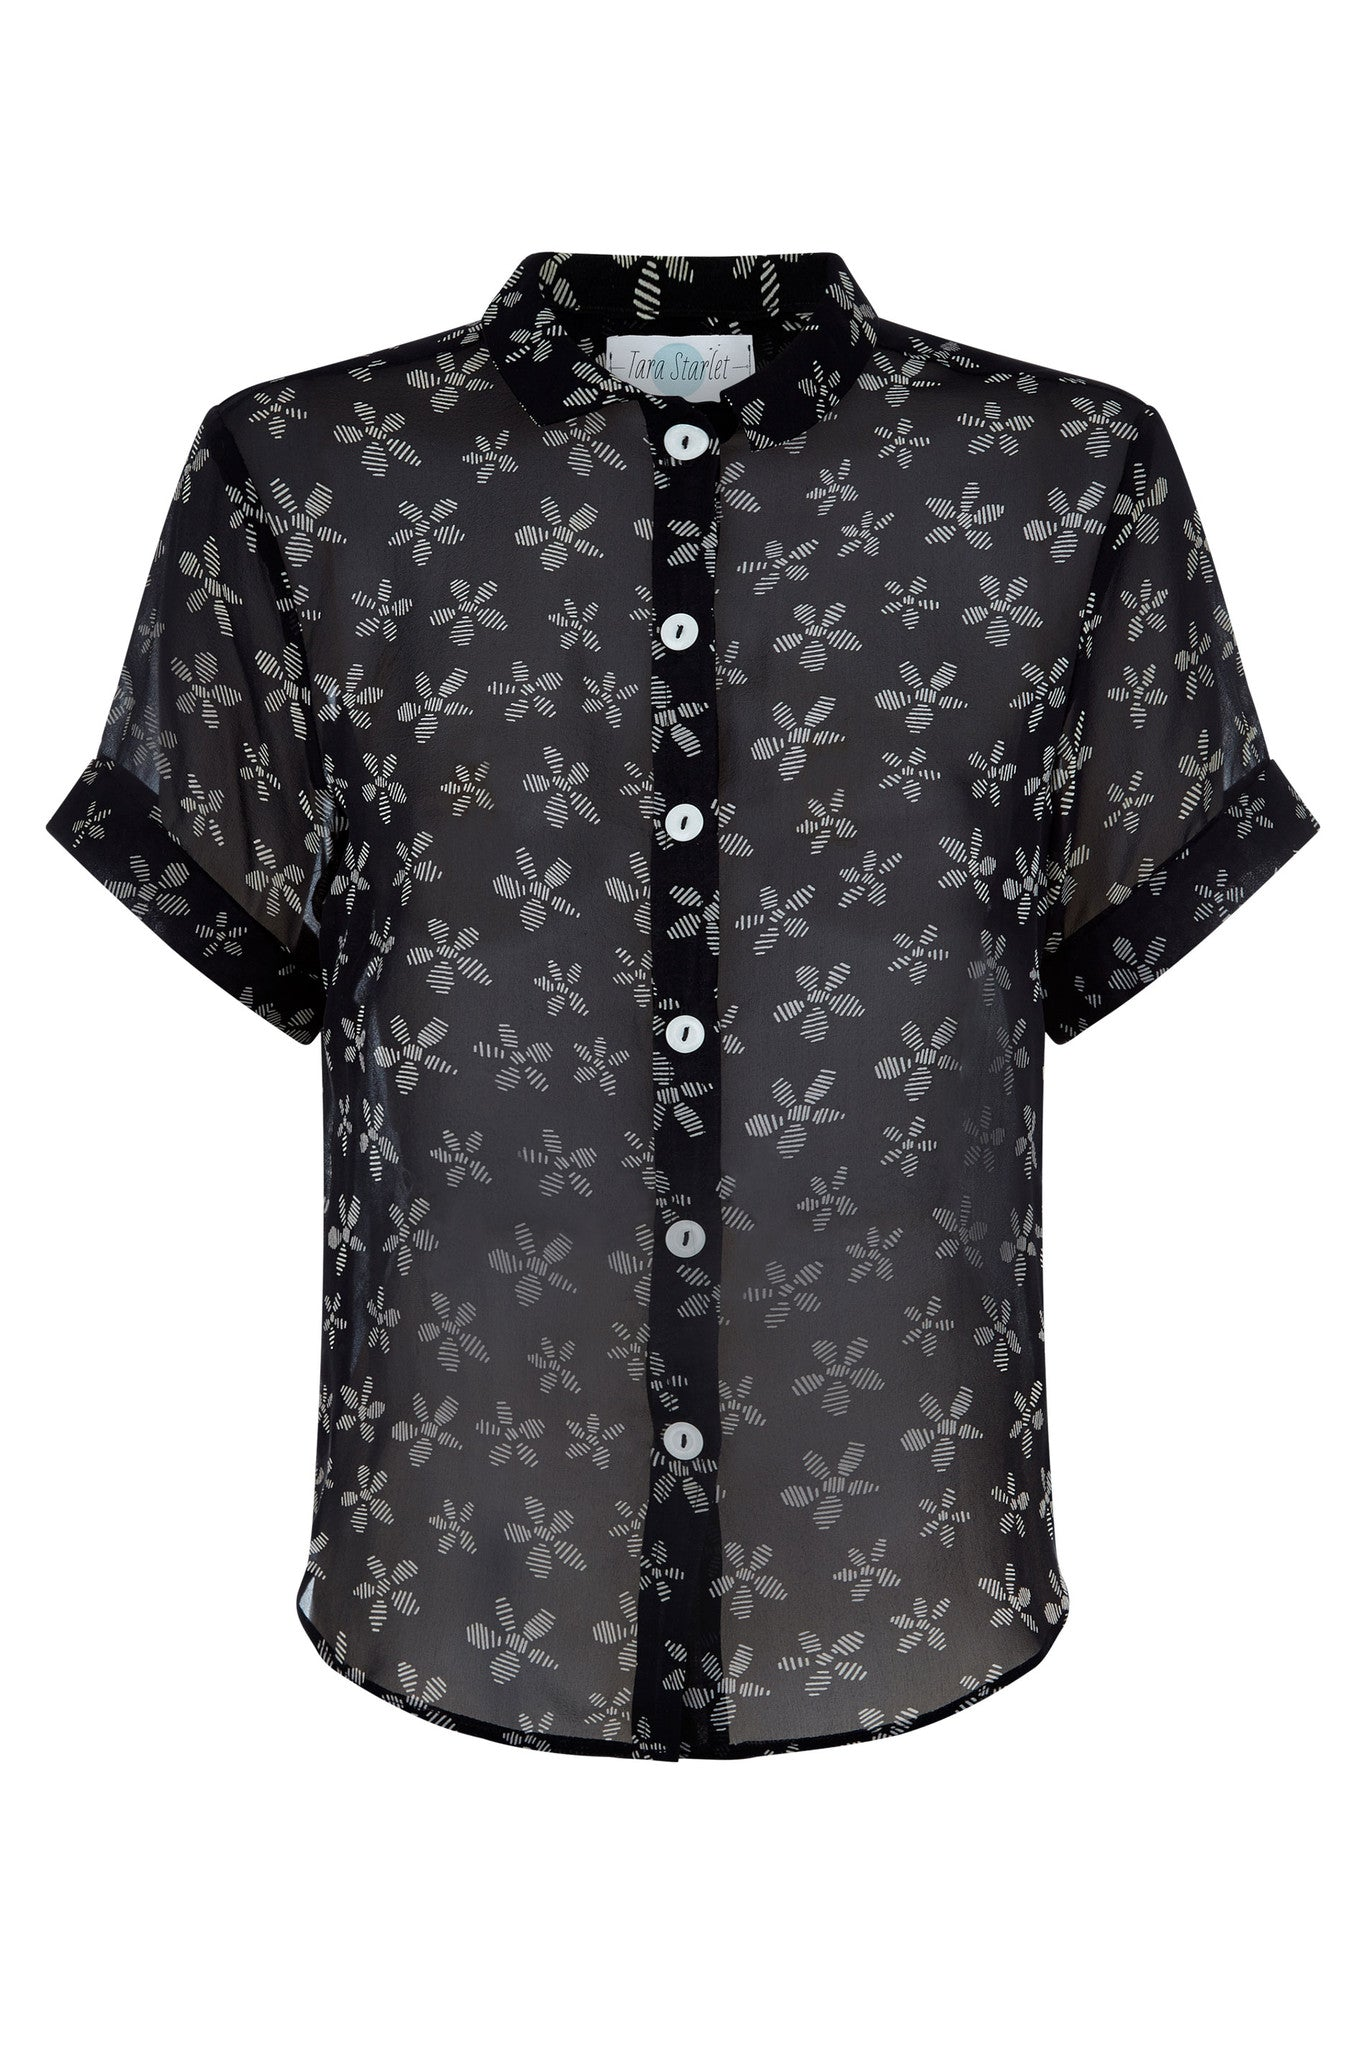 The Sheer Shirt - Black with Flowers